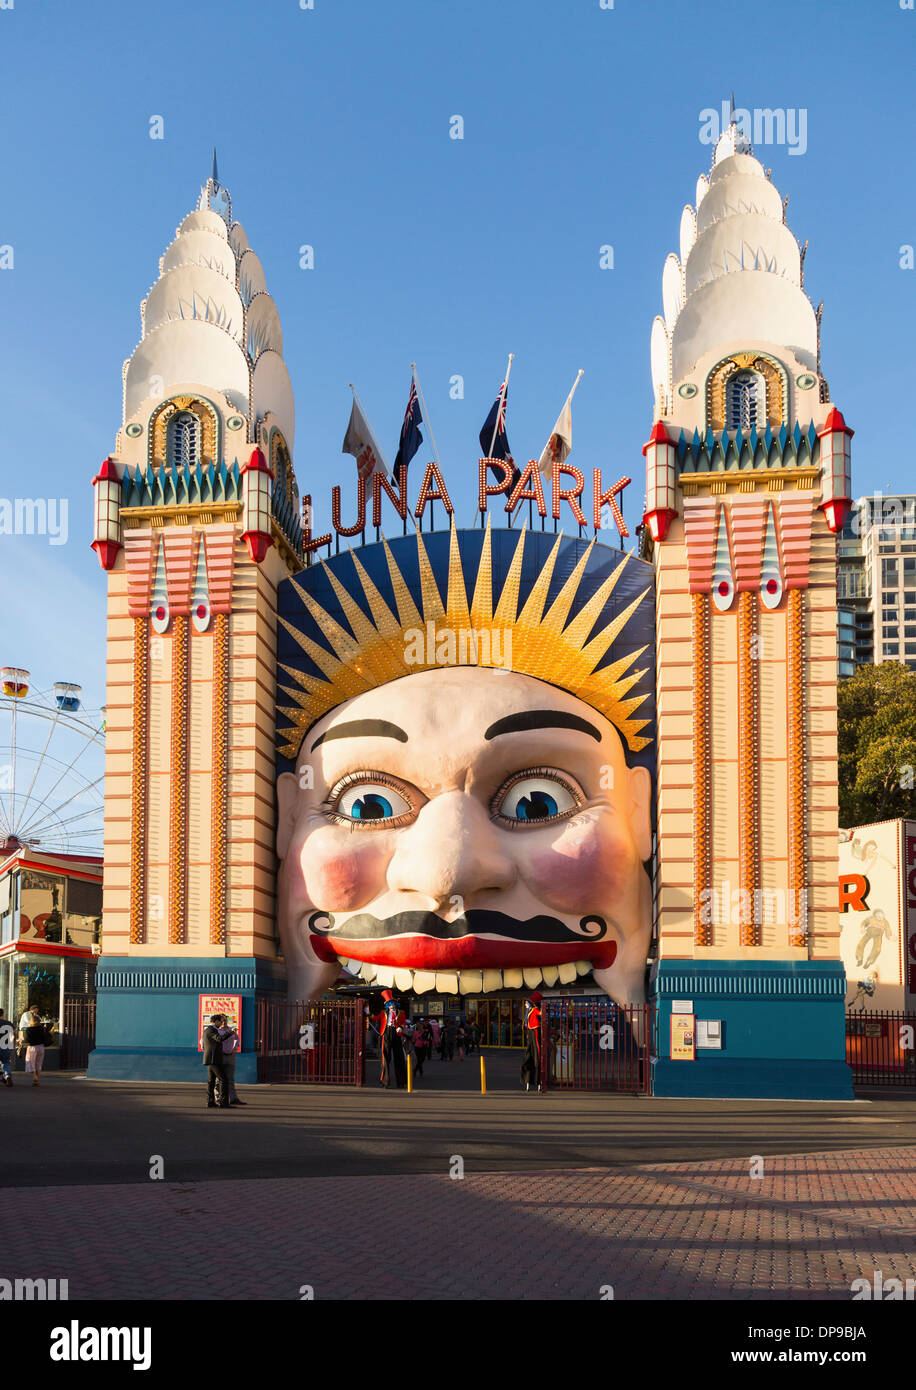 Luna Park Amusement center on north shore of Sydney Harbour, Australia - Stock Image